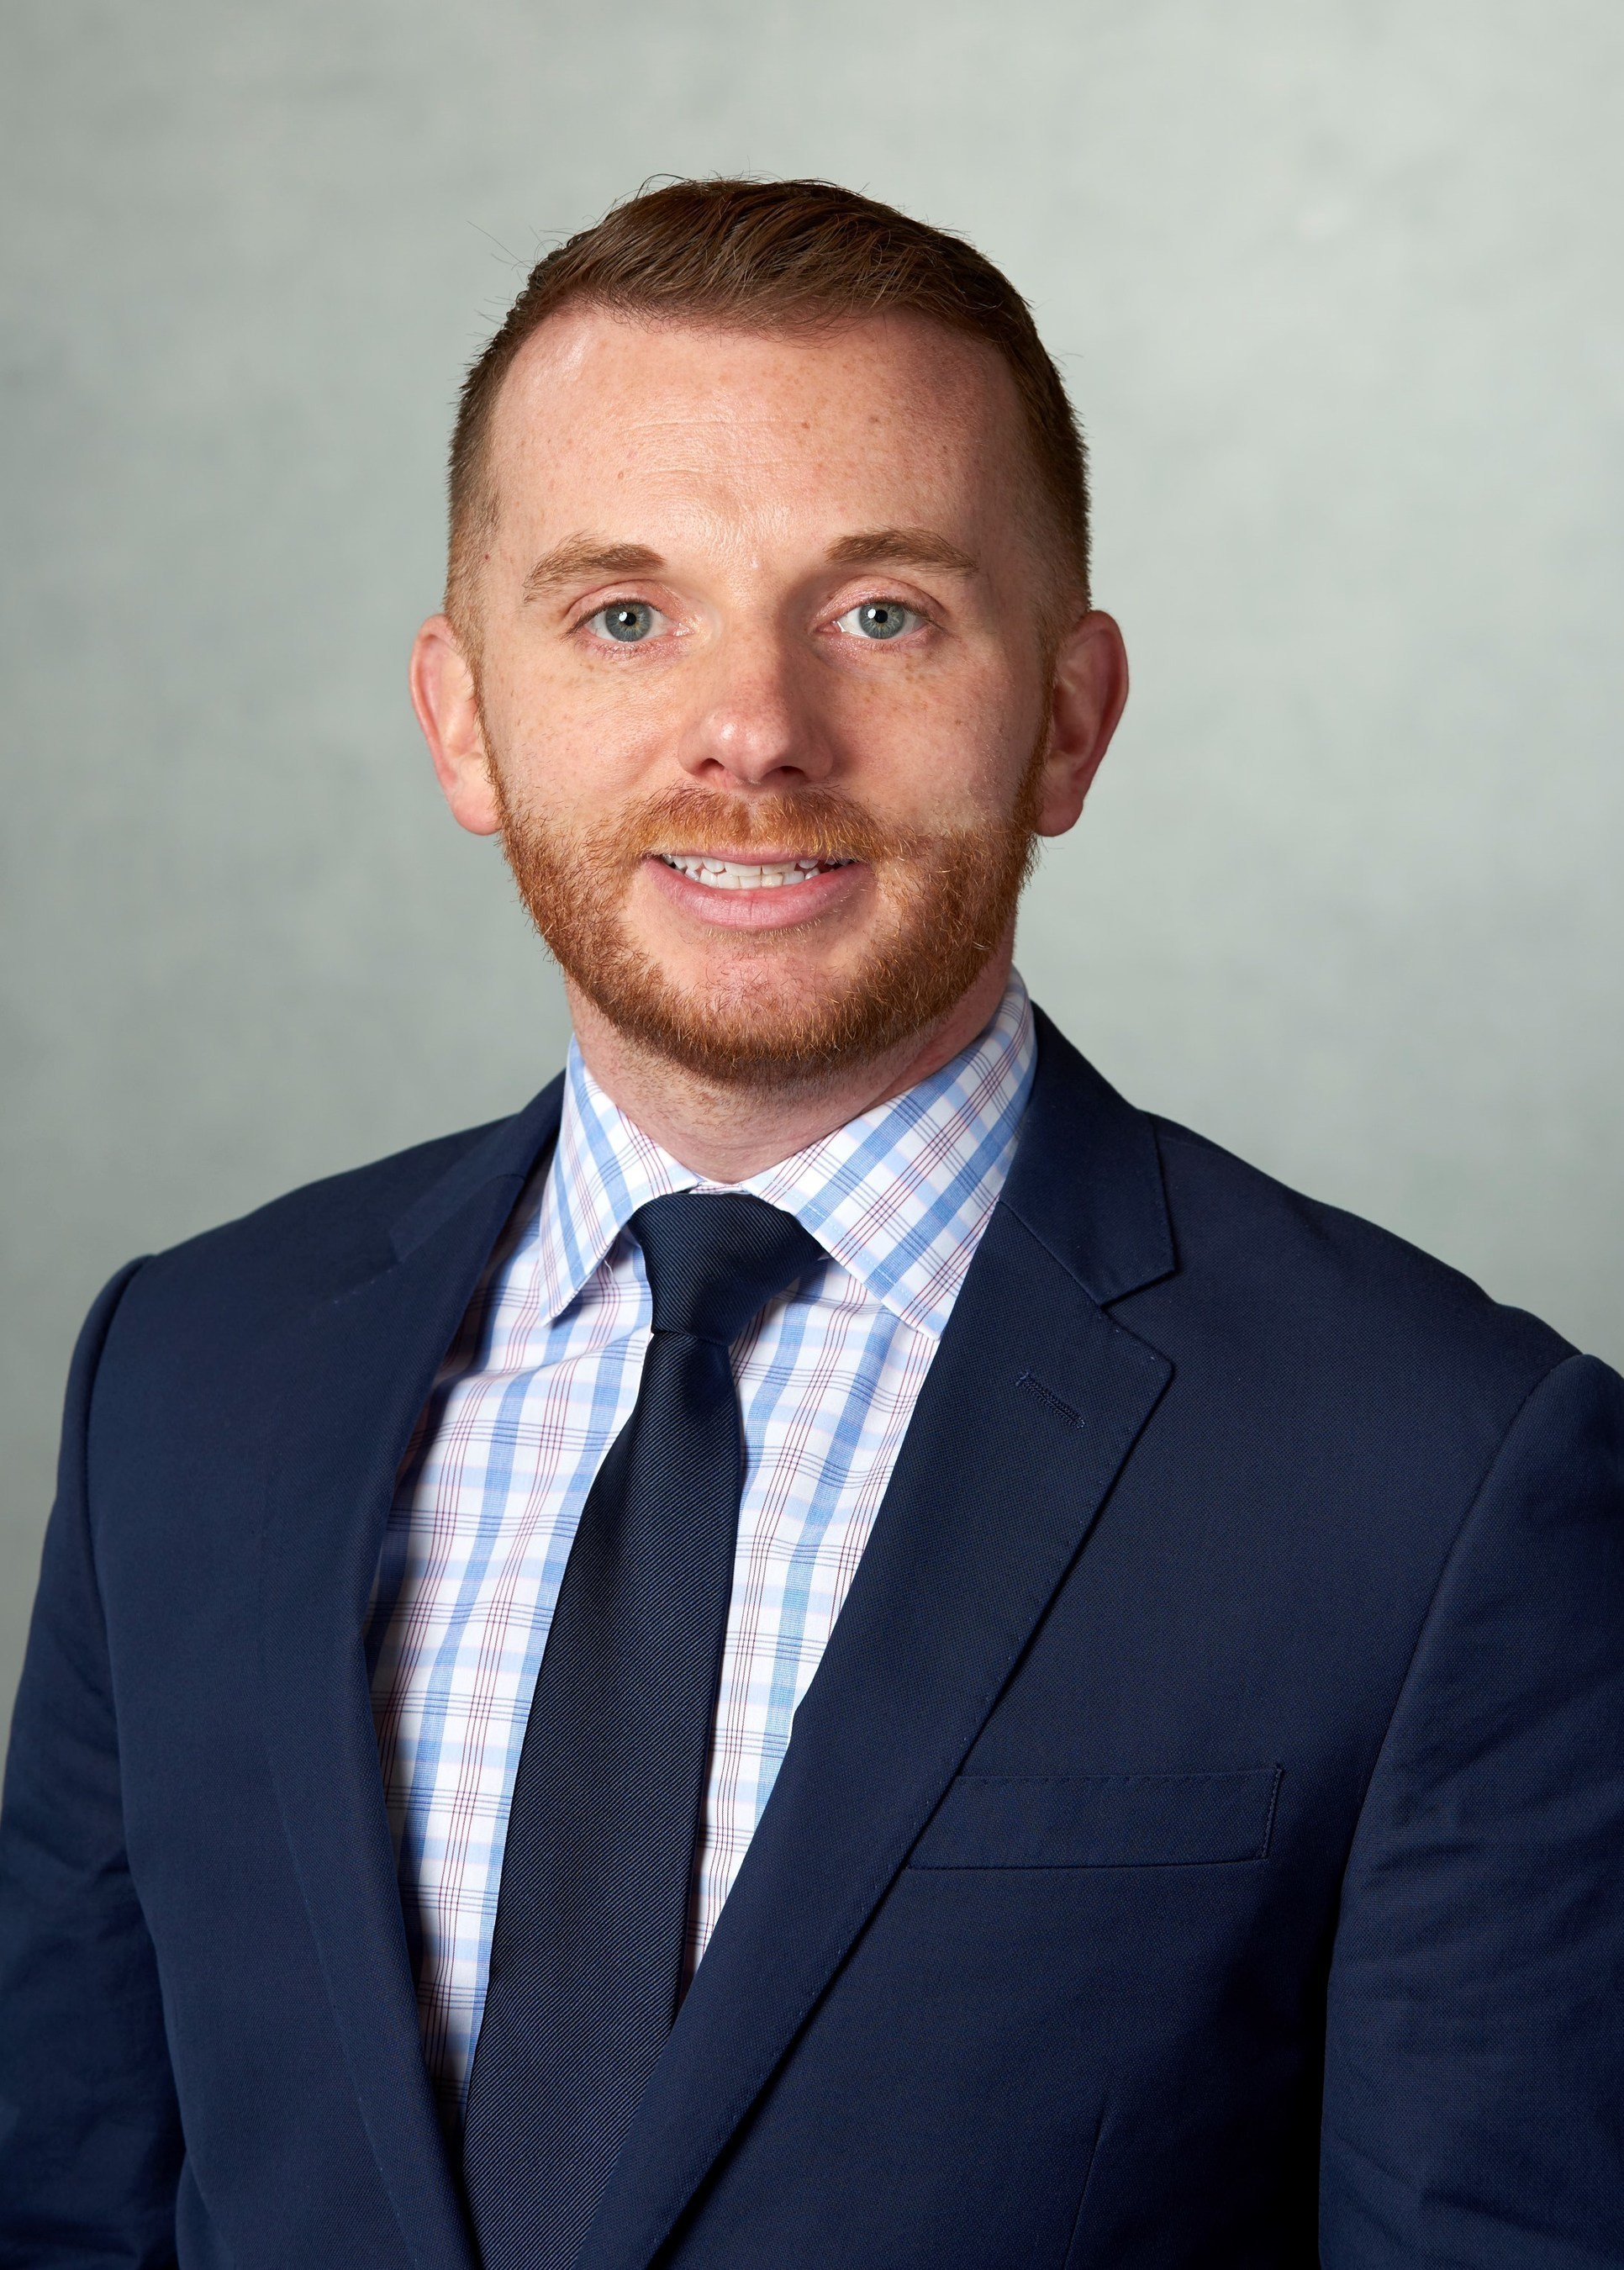 Joe Hollendoner has been appointed CEO of San Francisco AIDS Foundation.